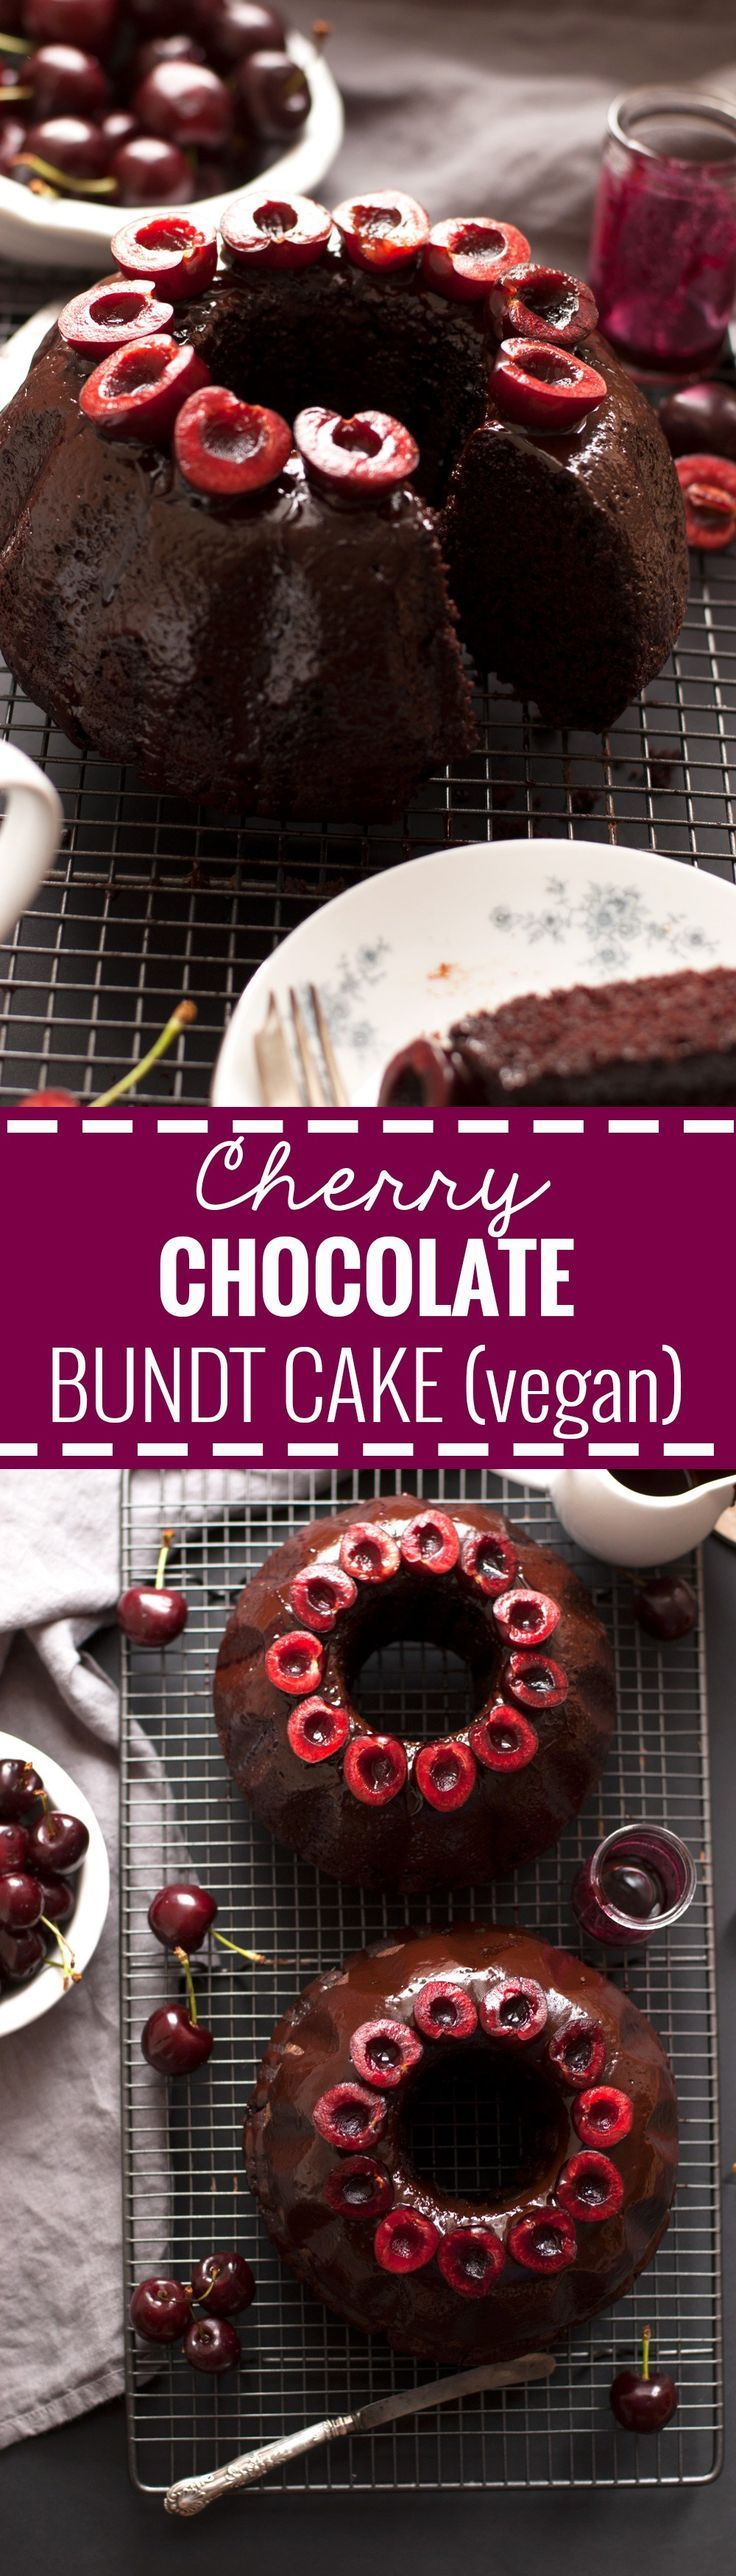 Cherry Chocolate Bundt Cake. Super soft, moist and delicious cake, 100% vegan and dairy free! Recipe from: http://annabanana.co/